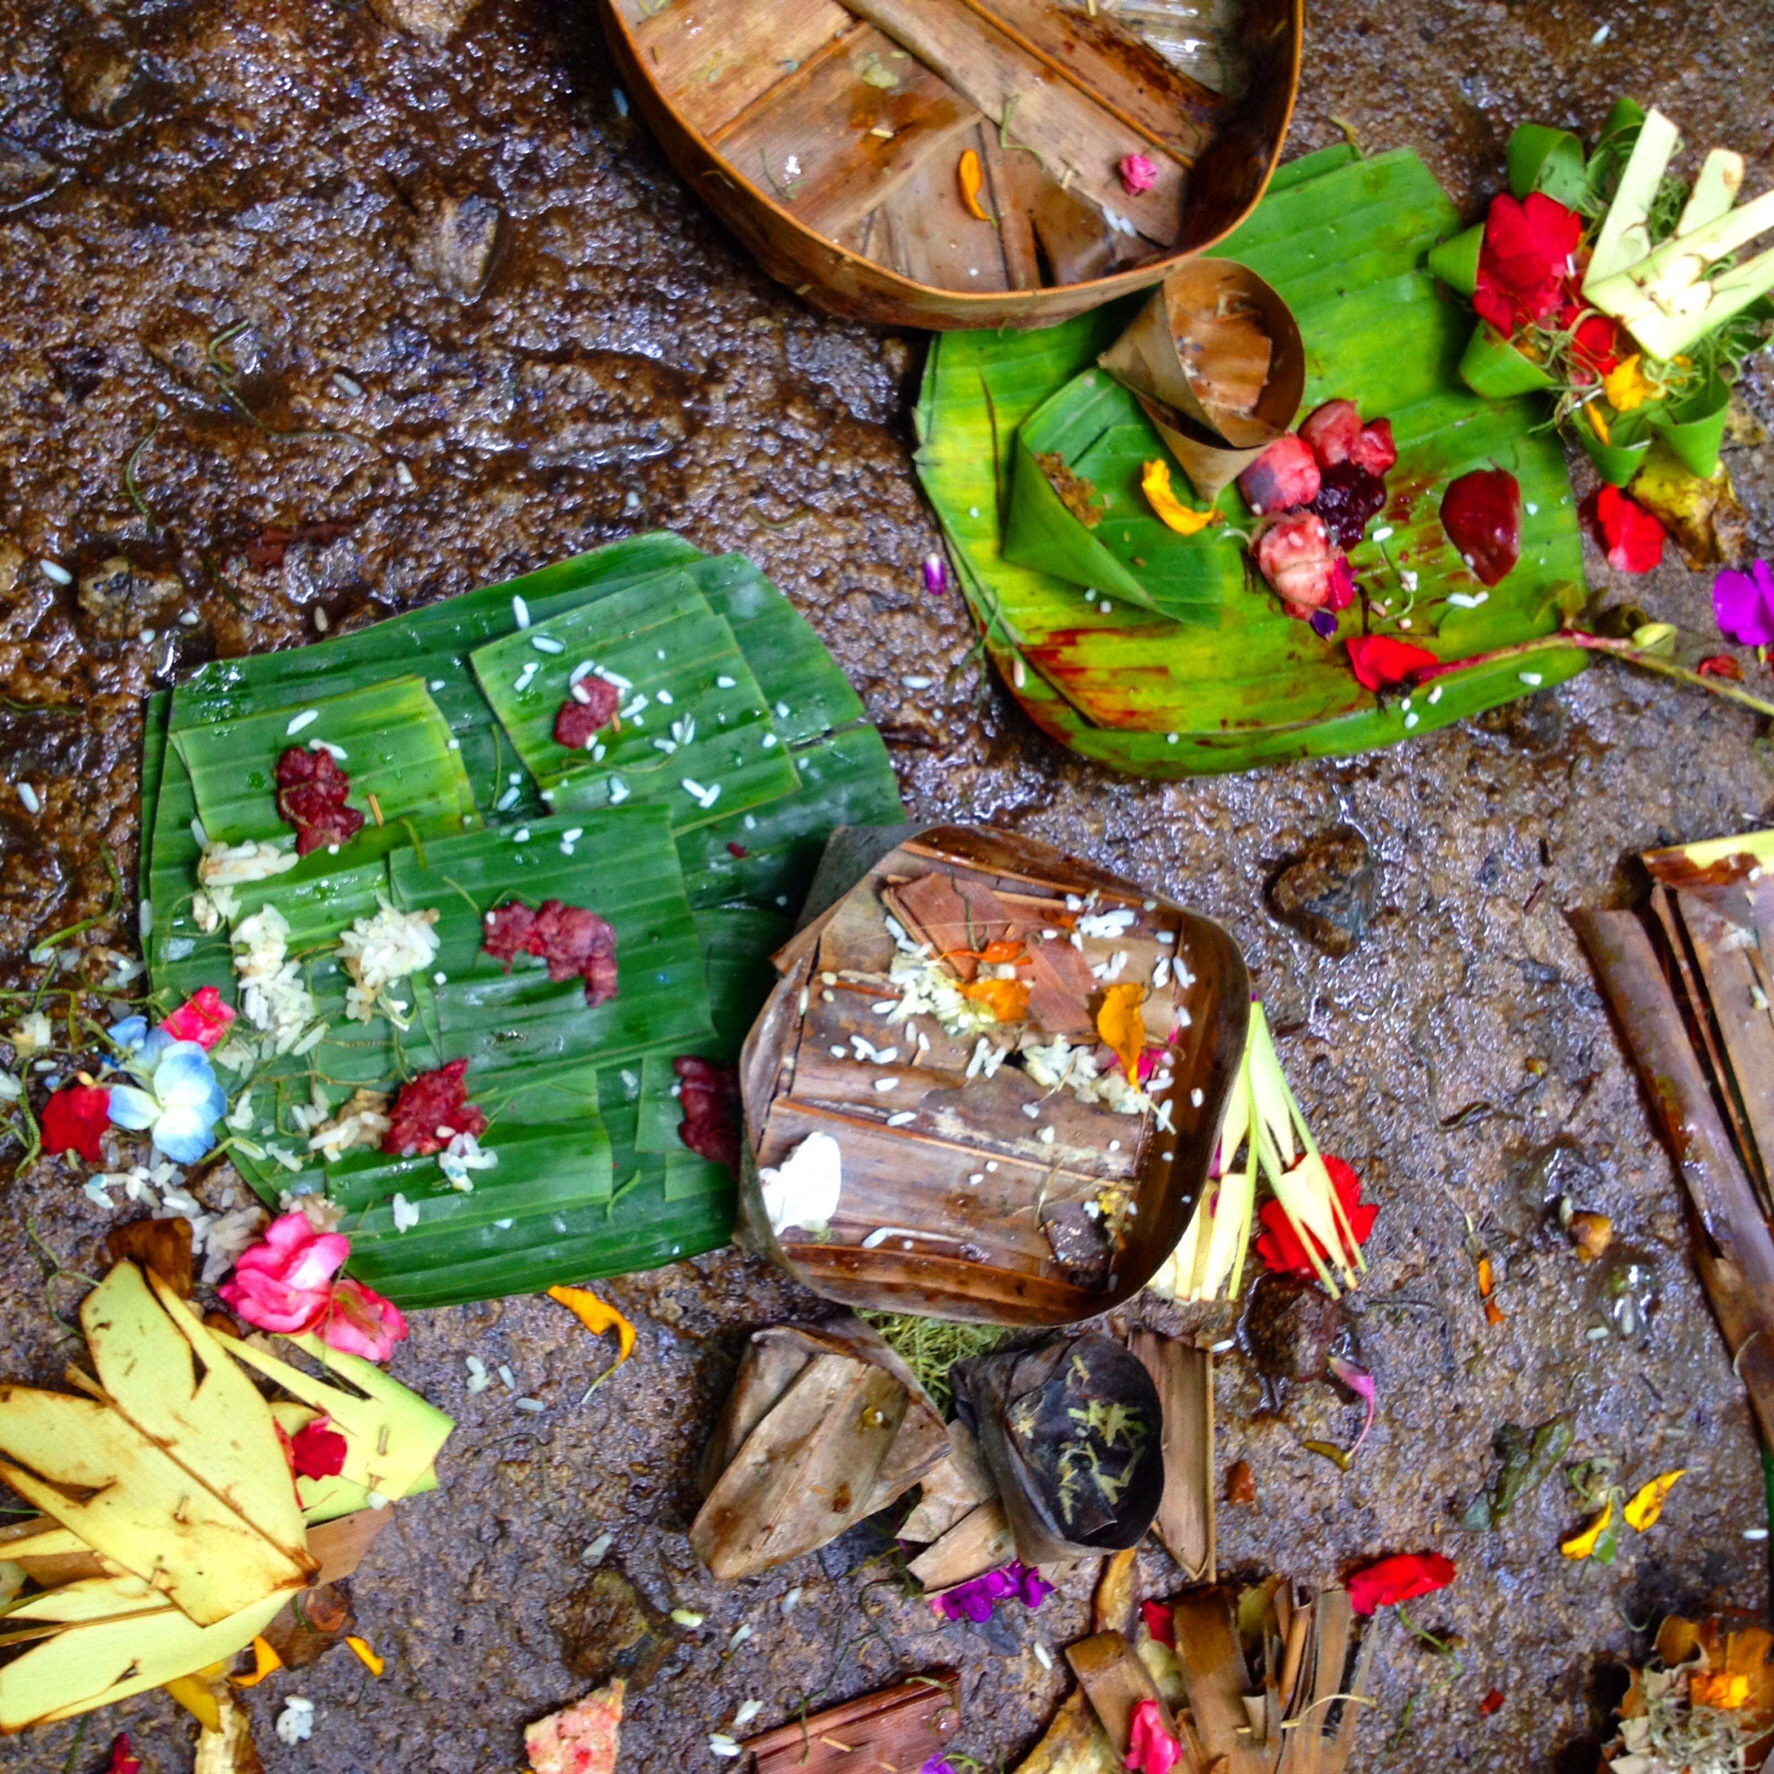 Ceremonial offerings in Bali